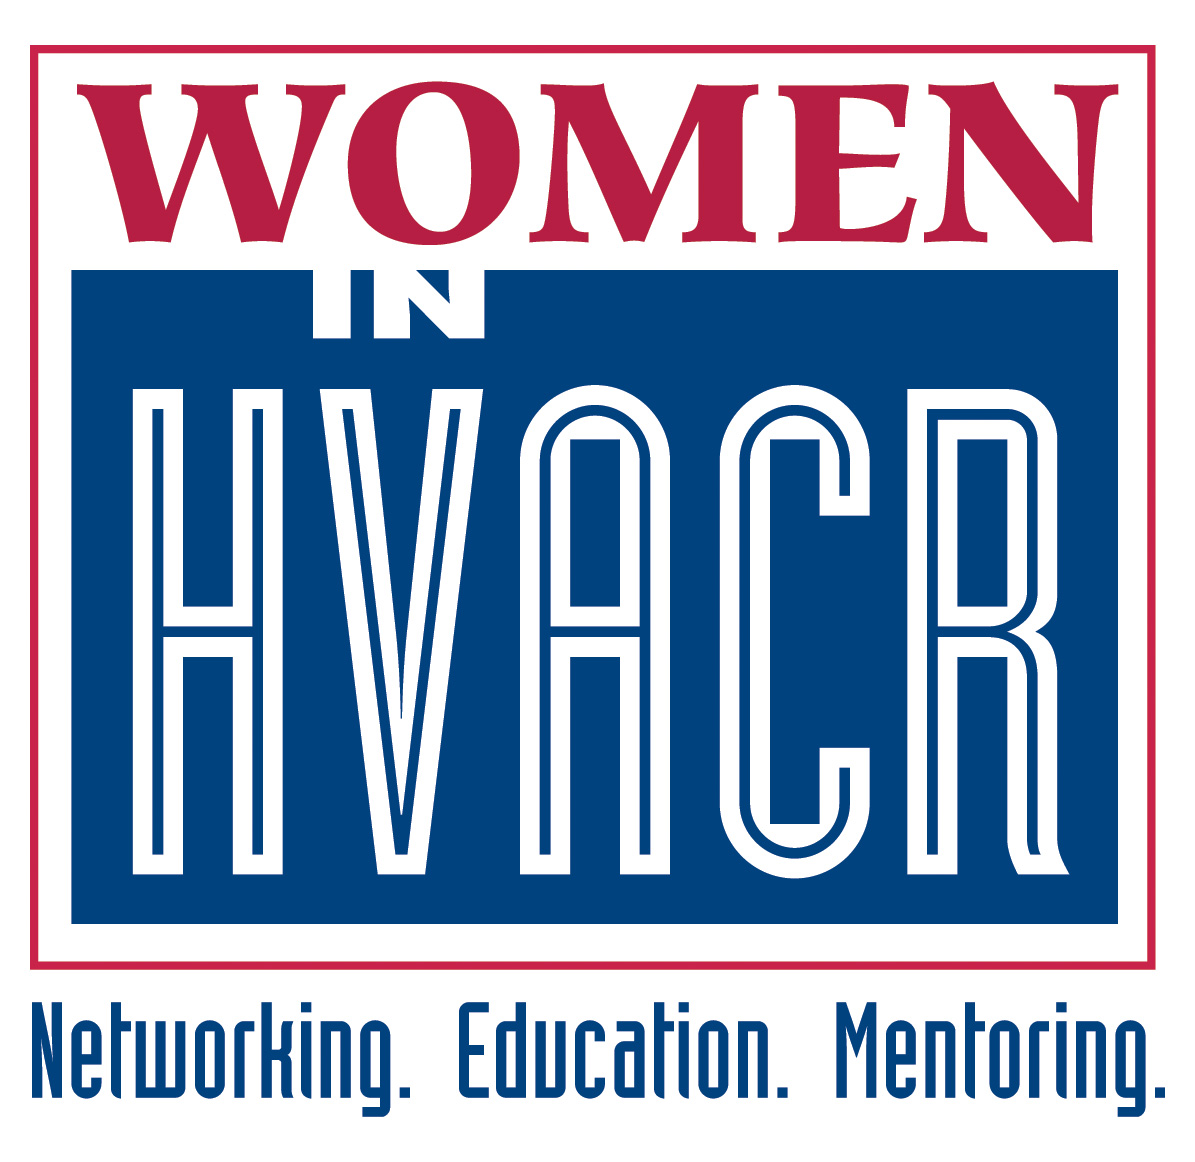 Women In HVACR P.O. Box 386 Damascus, MD 20872 - Phone: 860-681-3642